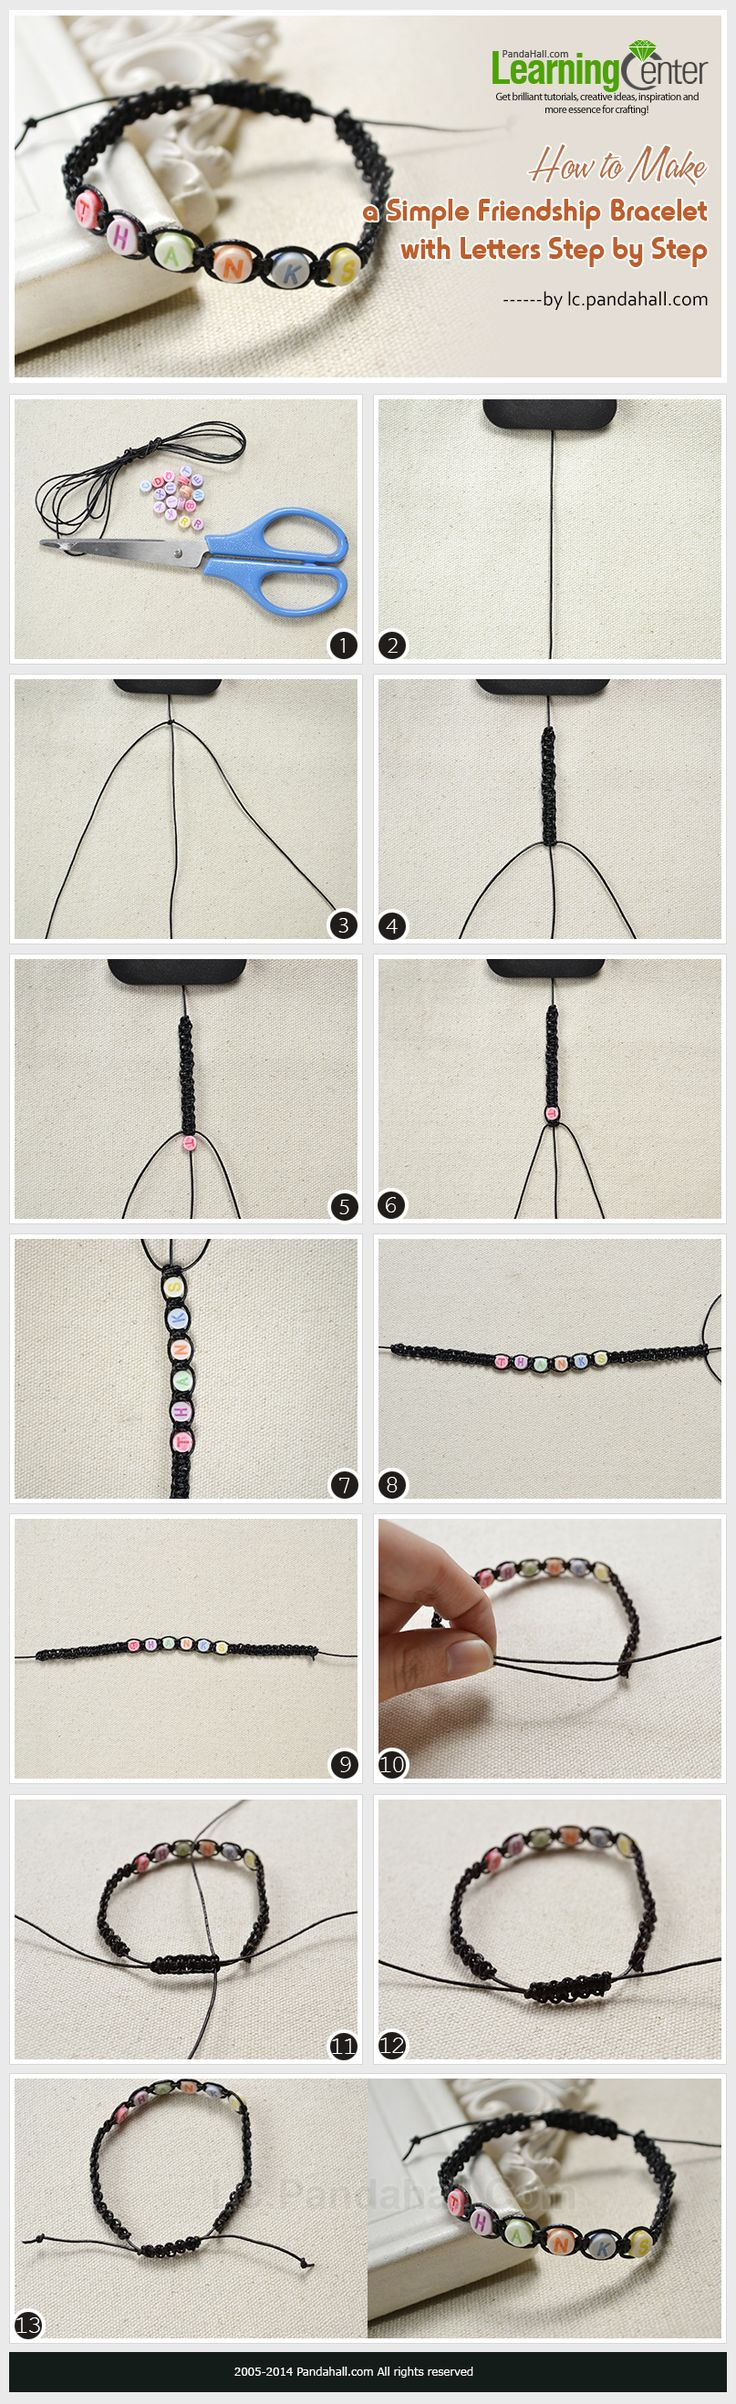 How to Make a Simple Friendship Bracelet with Letters Step by Step